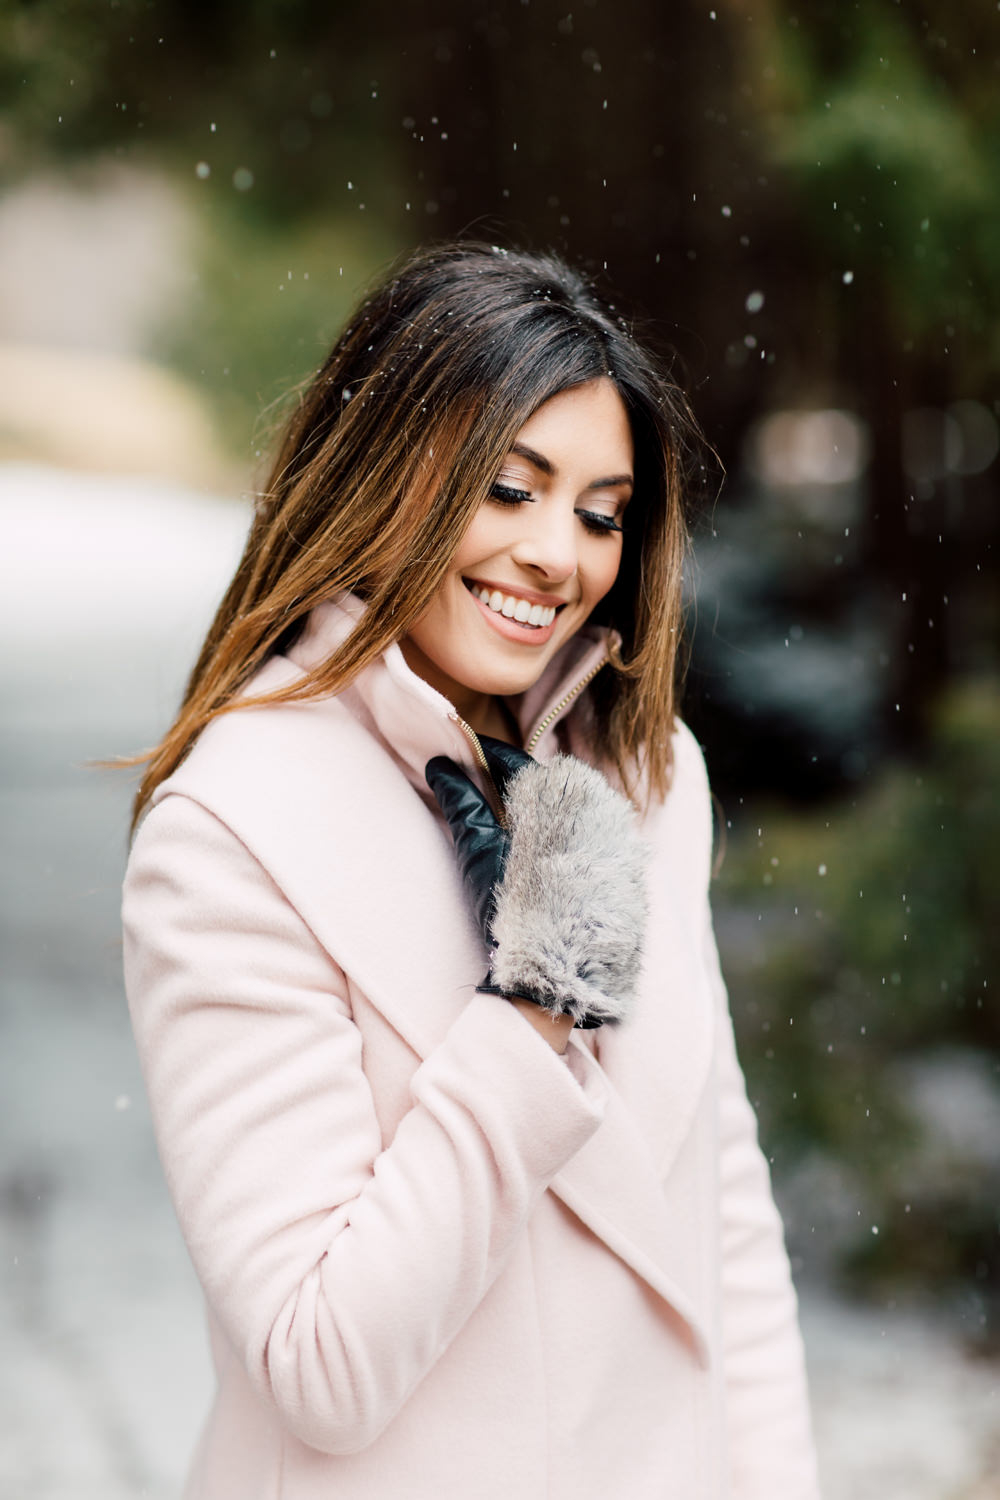 girl portrait in snow